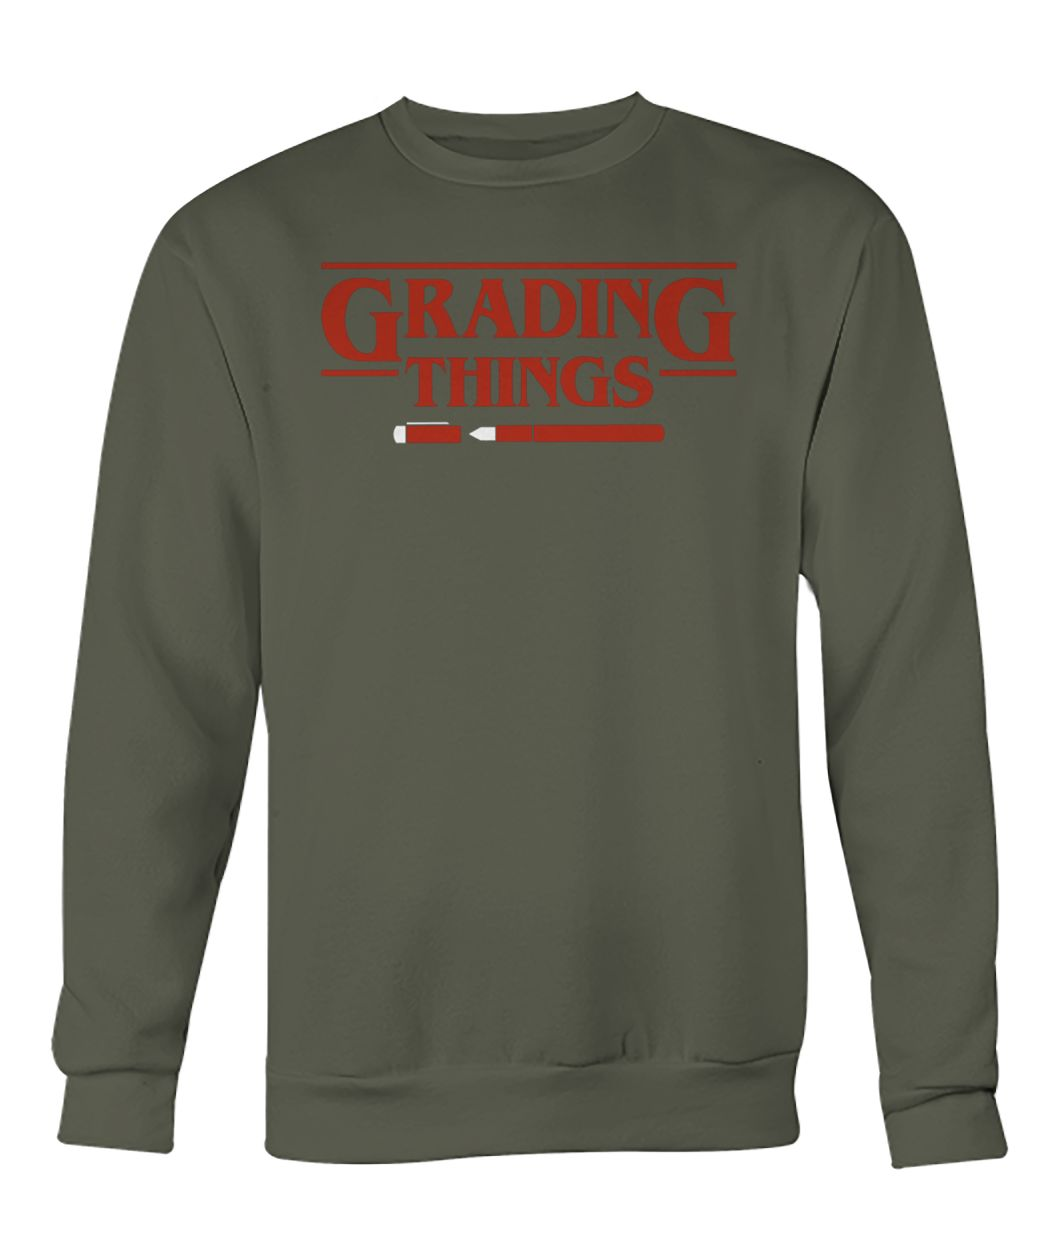 Stranger things grading things crew neck sweatshirt